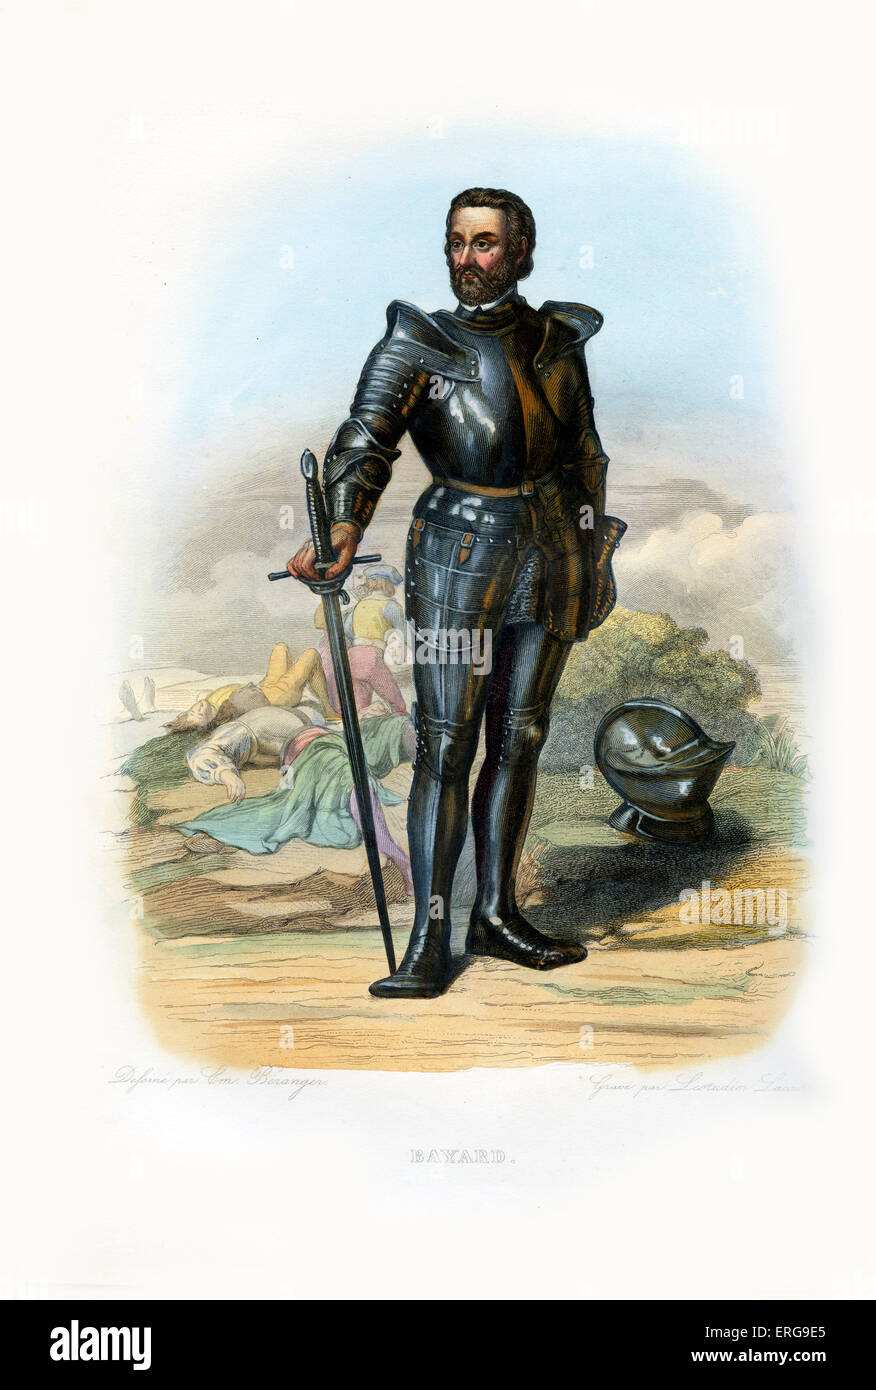 Pierre Terrail Le Vieux, seigneur de Bayard. Dauphinois nobleman and  knight who distinguished himself during the - Stock Image